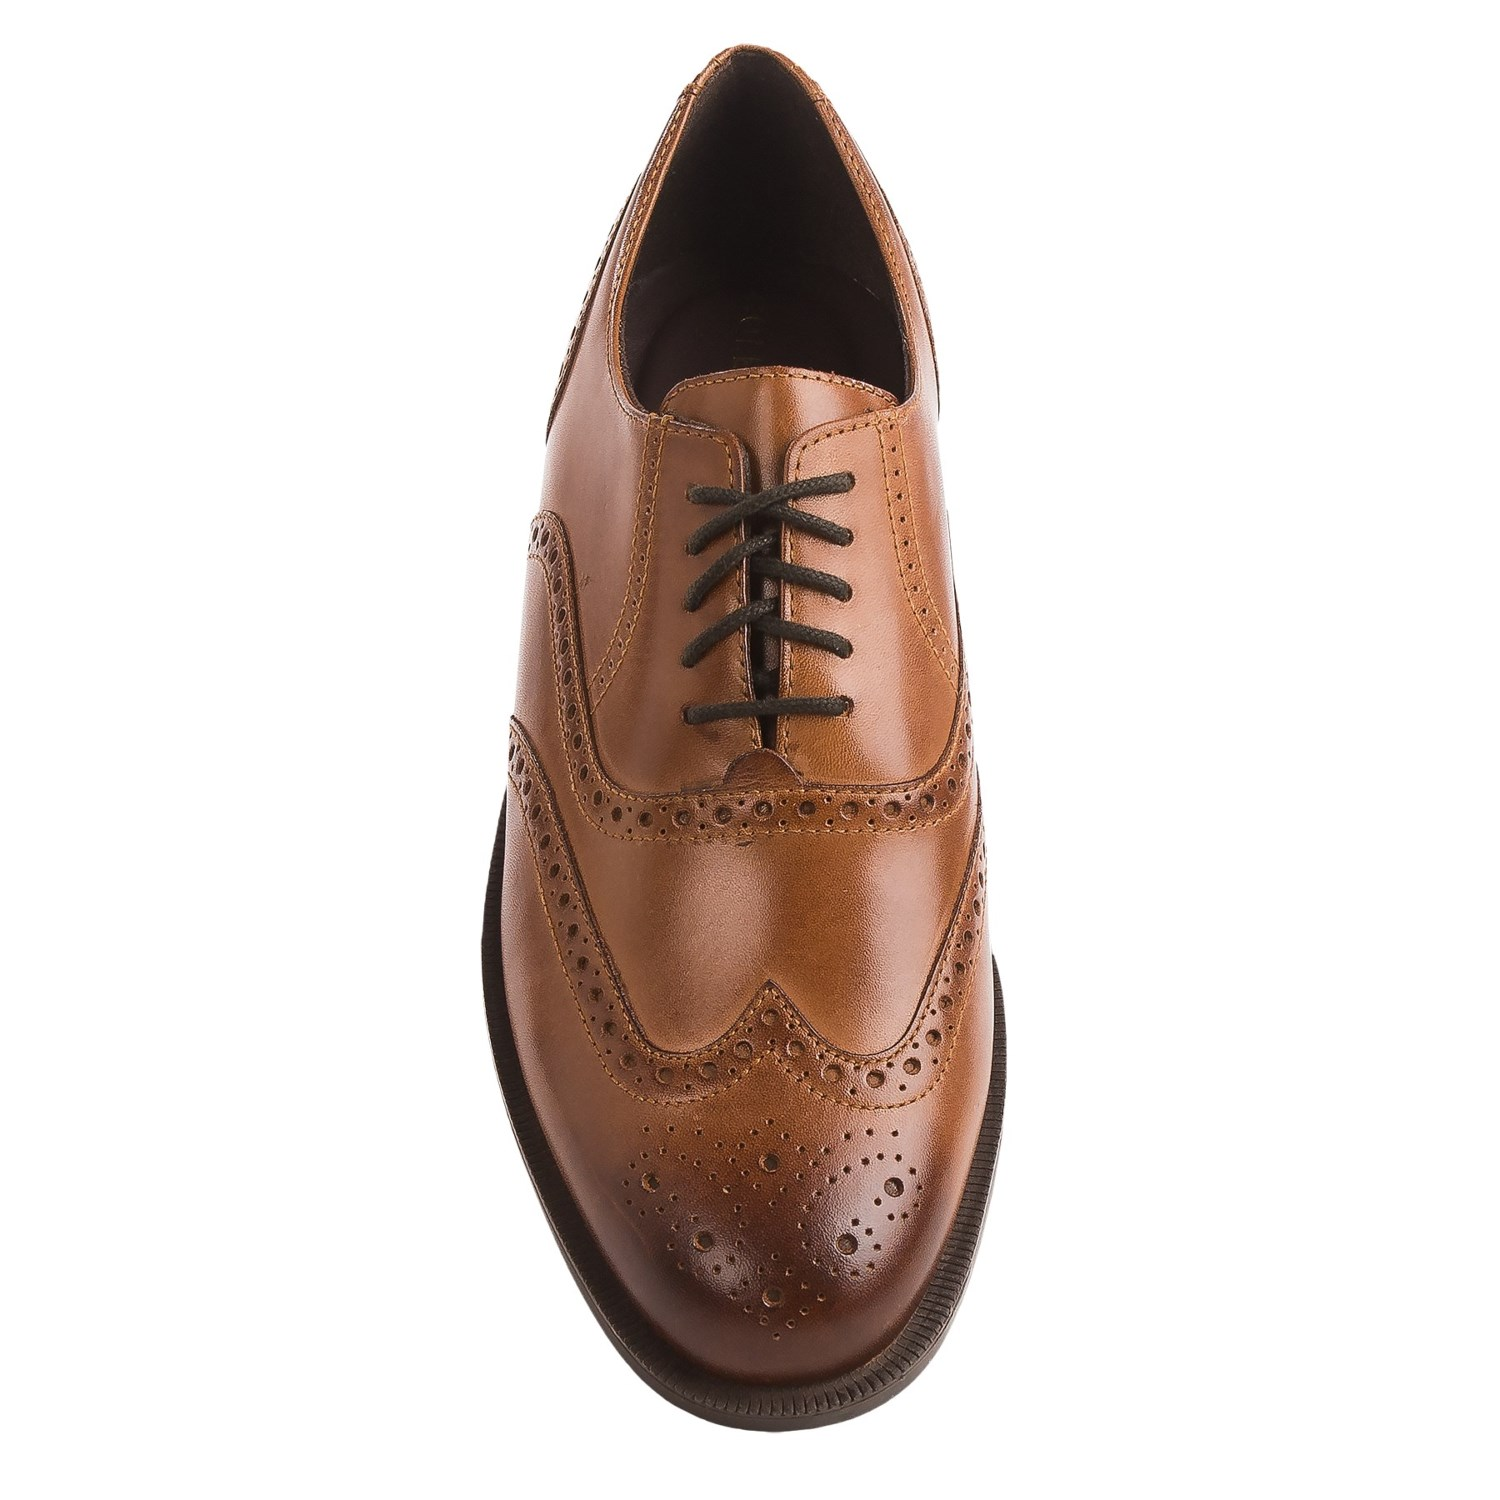 2f24c3ba733 Cole Haan New Cole Haan Mens 8.5 Dustin Wing Tip Oxford Ii Leather ...